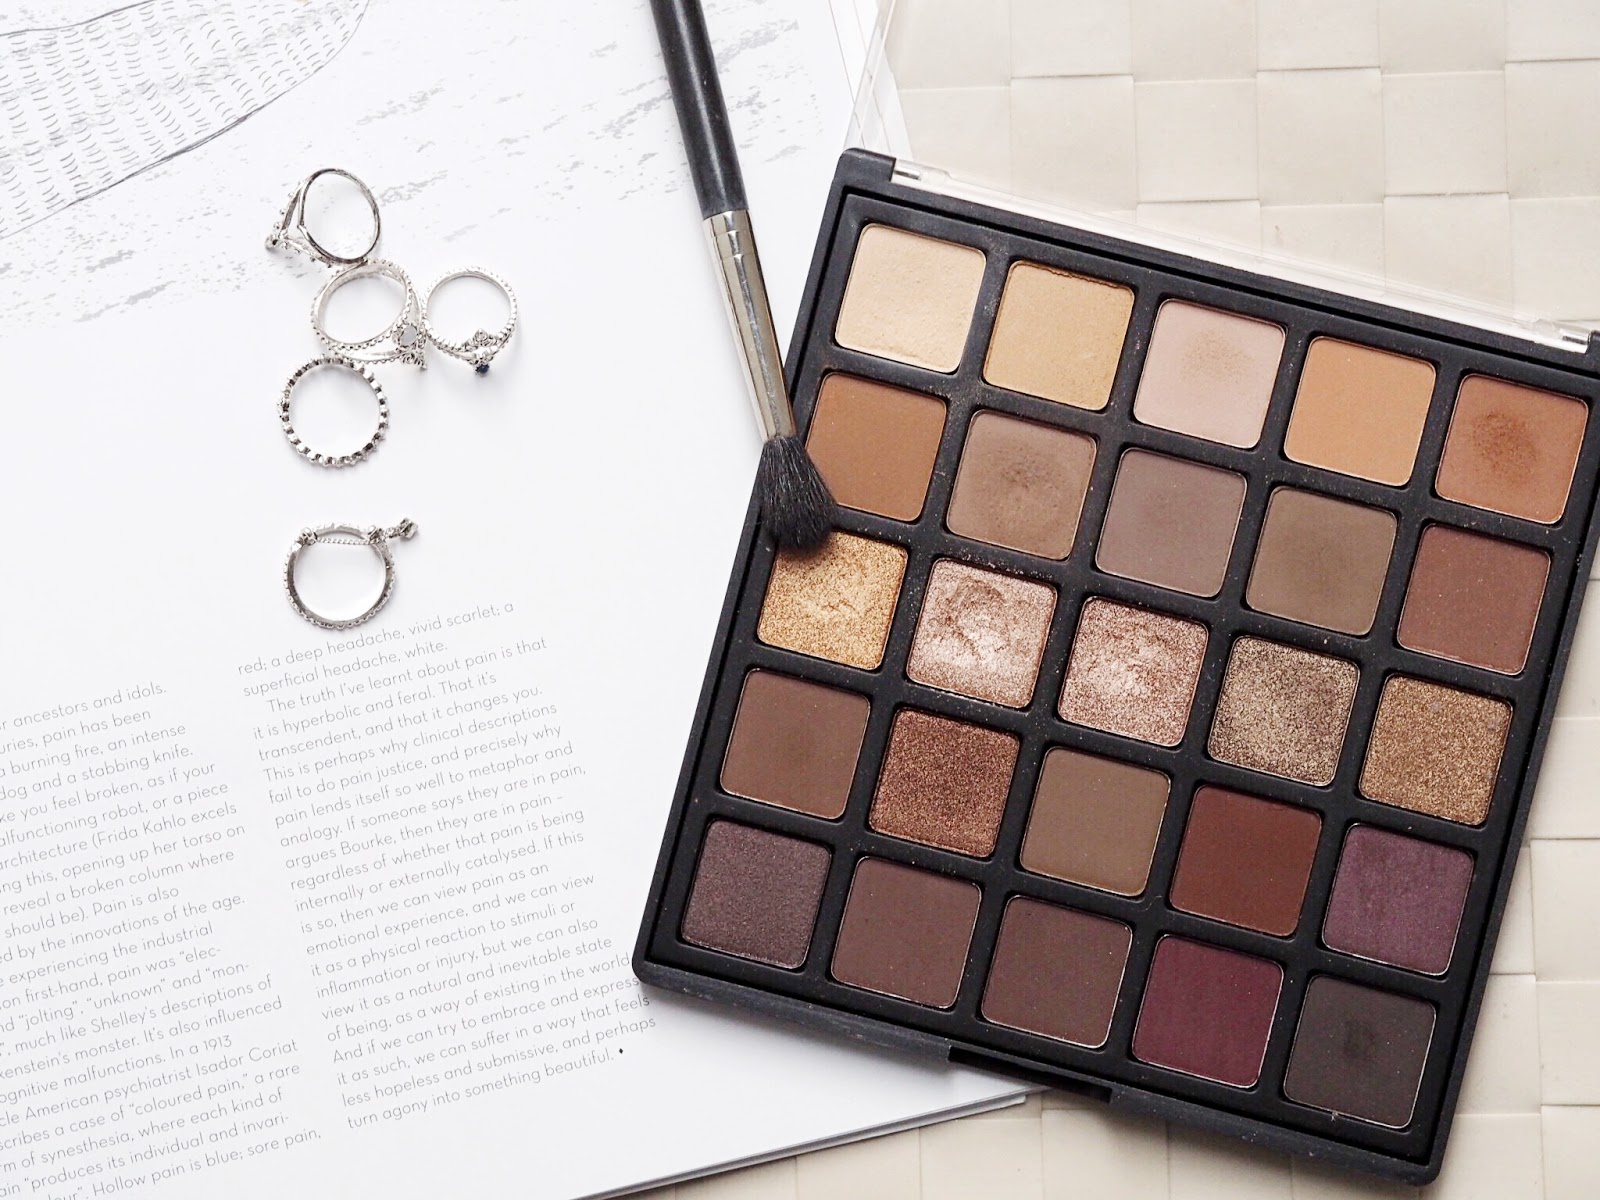 Morphe 25B Bronzed Mocha Palette | Review & Swatches